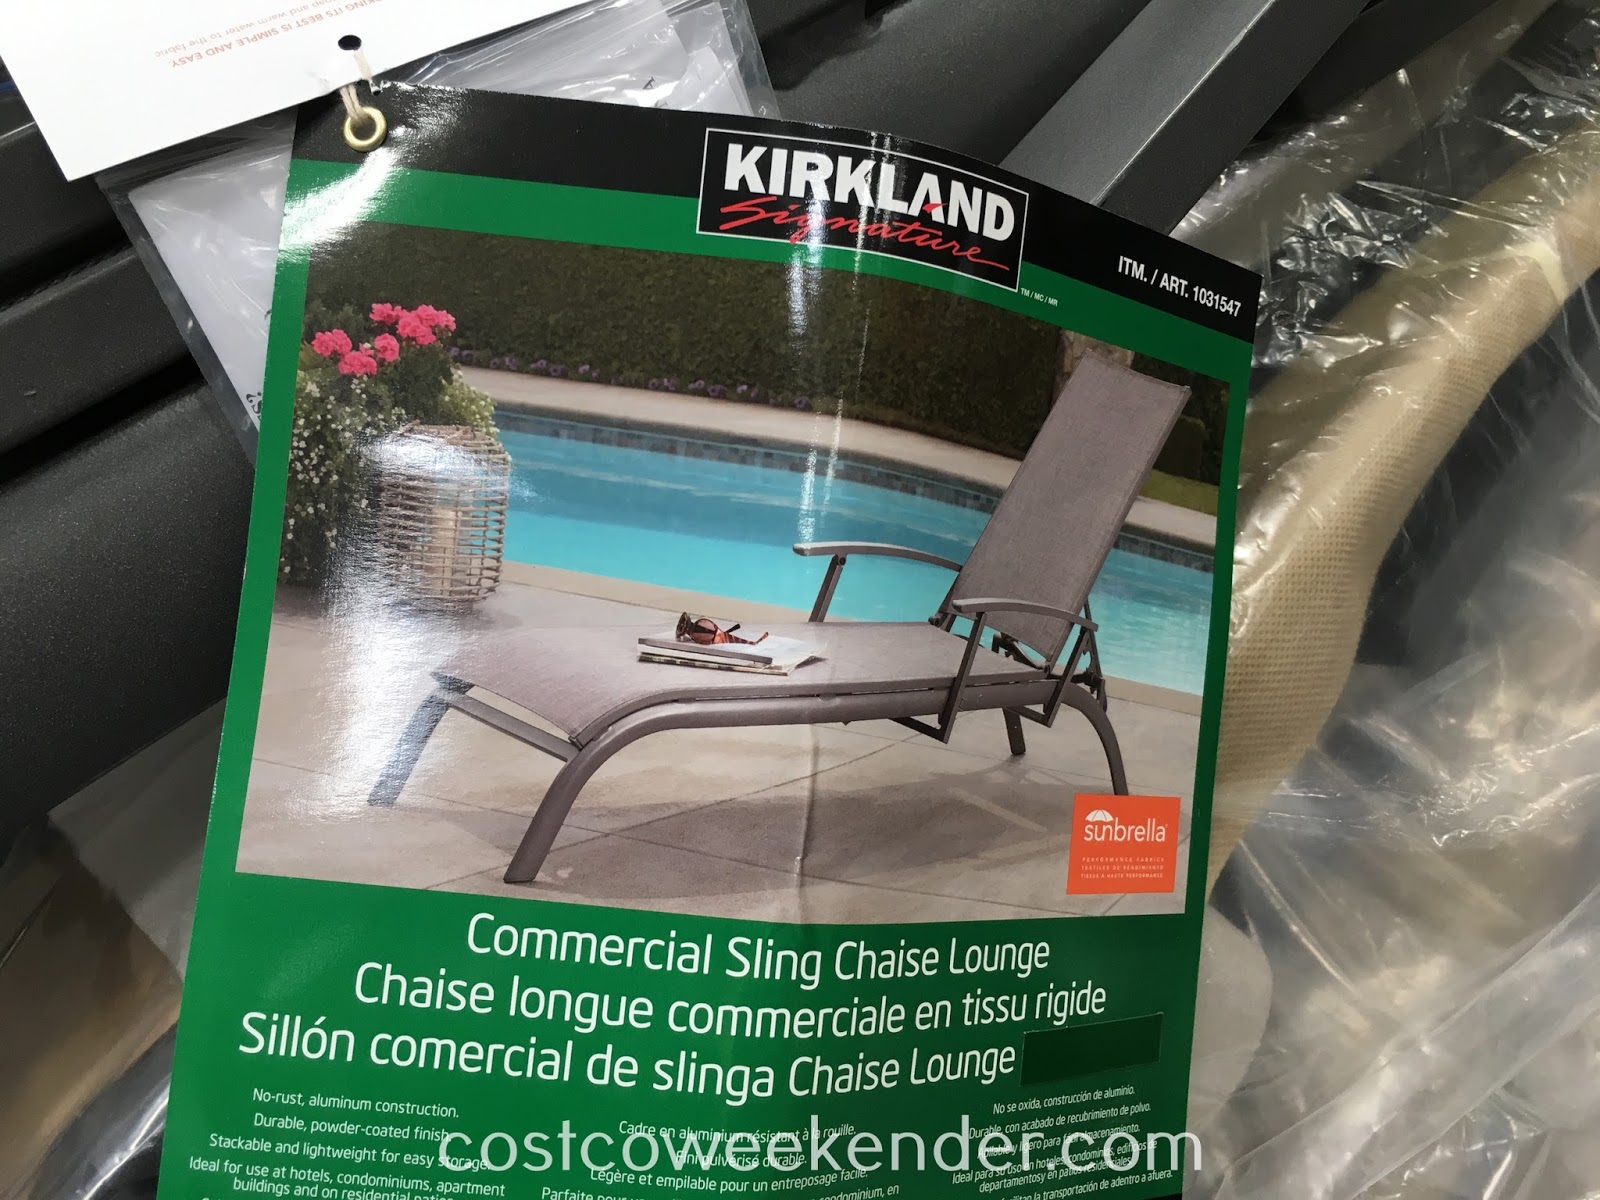 - Kirkland Signature Commercial Sling Chaise Lounge Costco Weekender